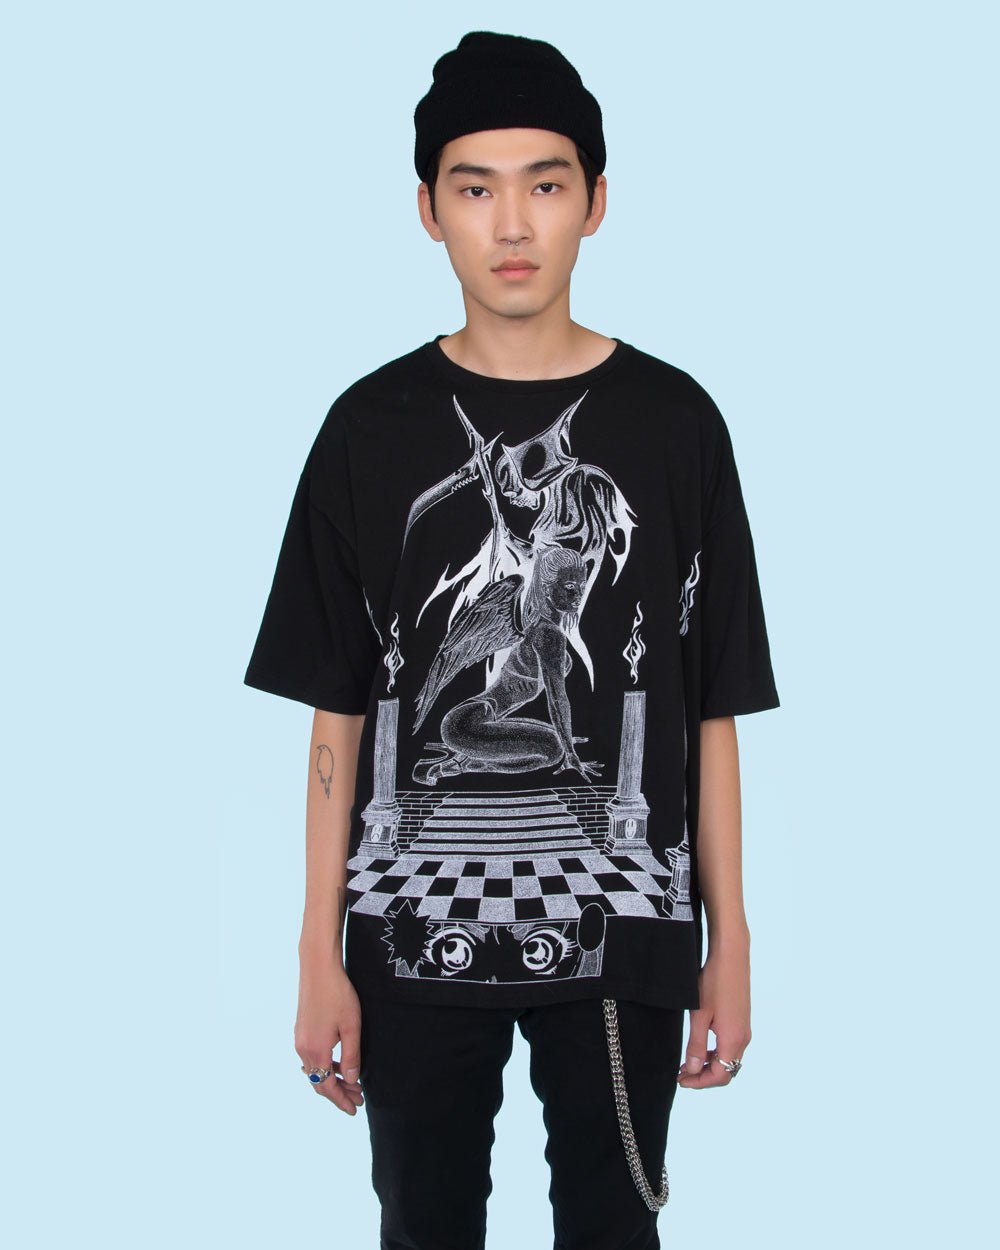 ANTI-VIRAL BY YENTA OVERSIZE TEE